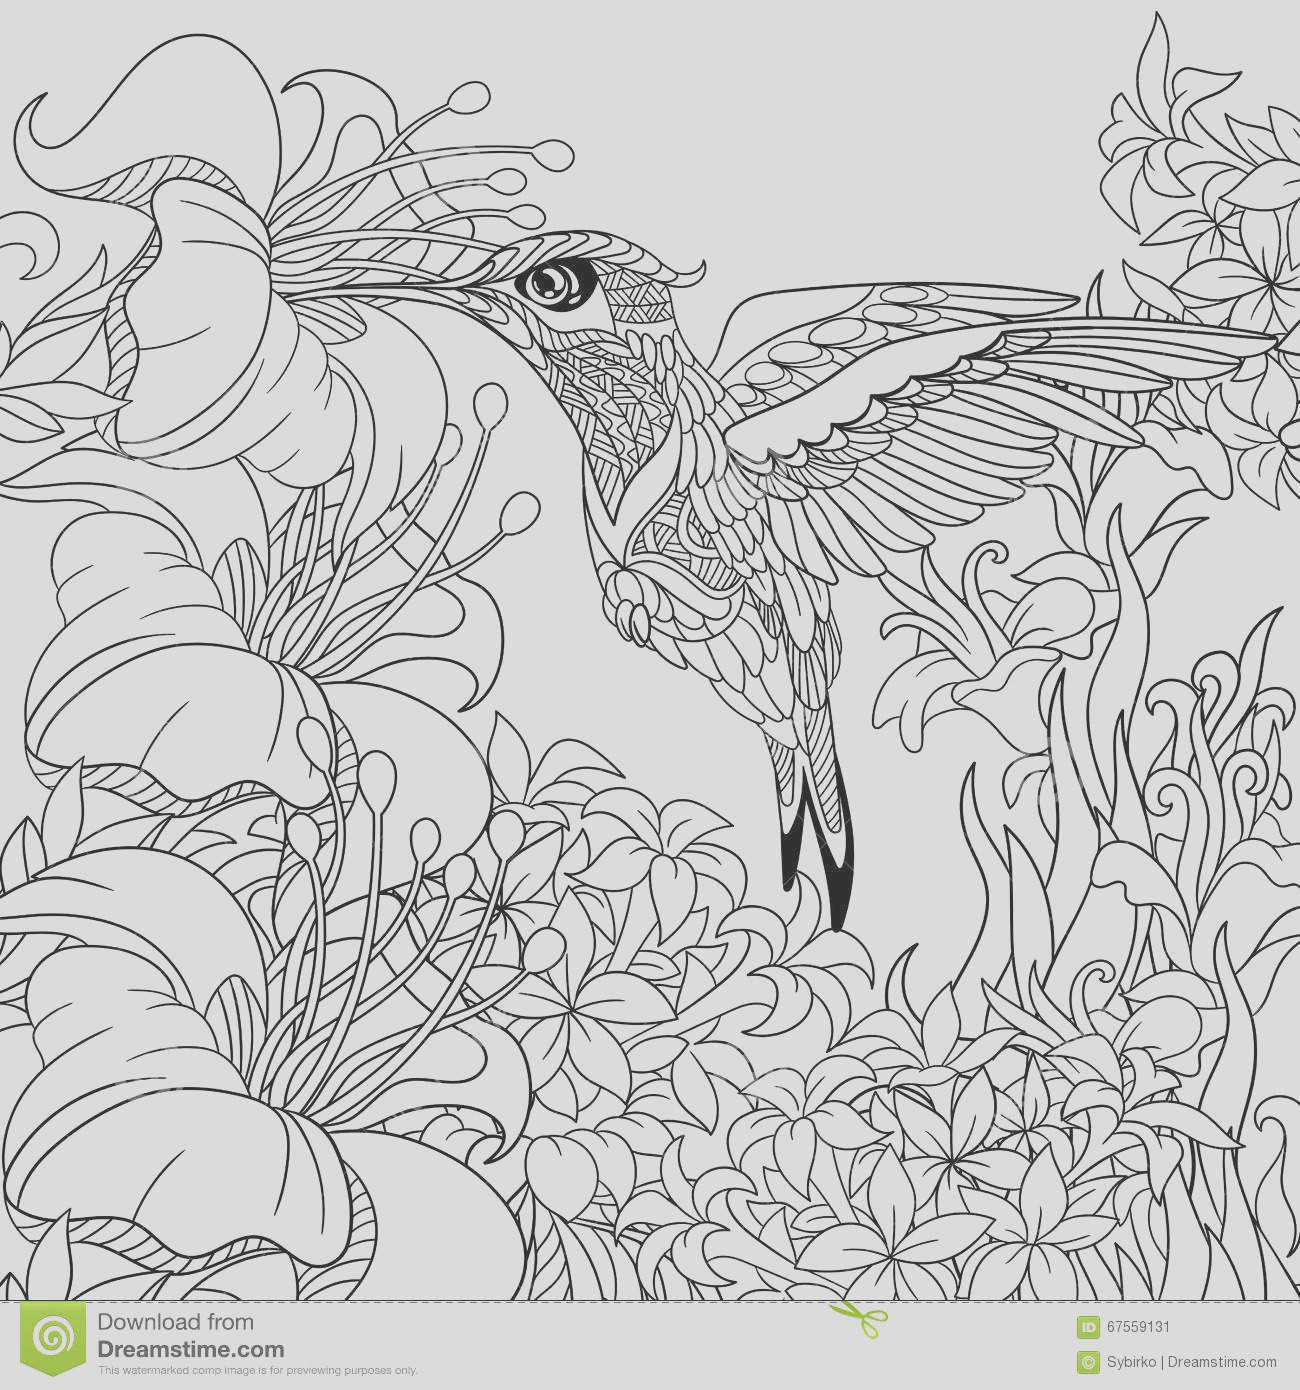 stock illustration zentangle stylized hummingbird cartoon flying around flowers full nectar sketch adult antistress coloring page hand drawn image